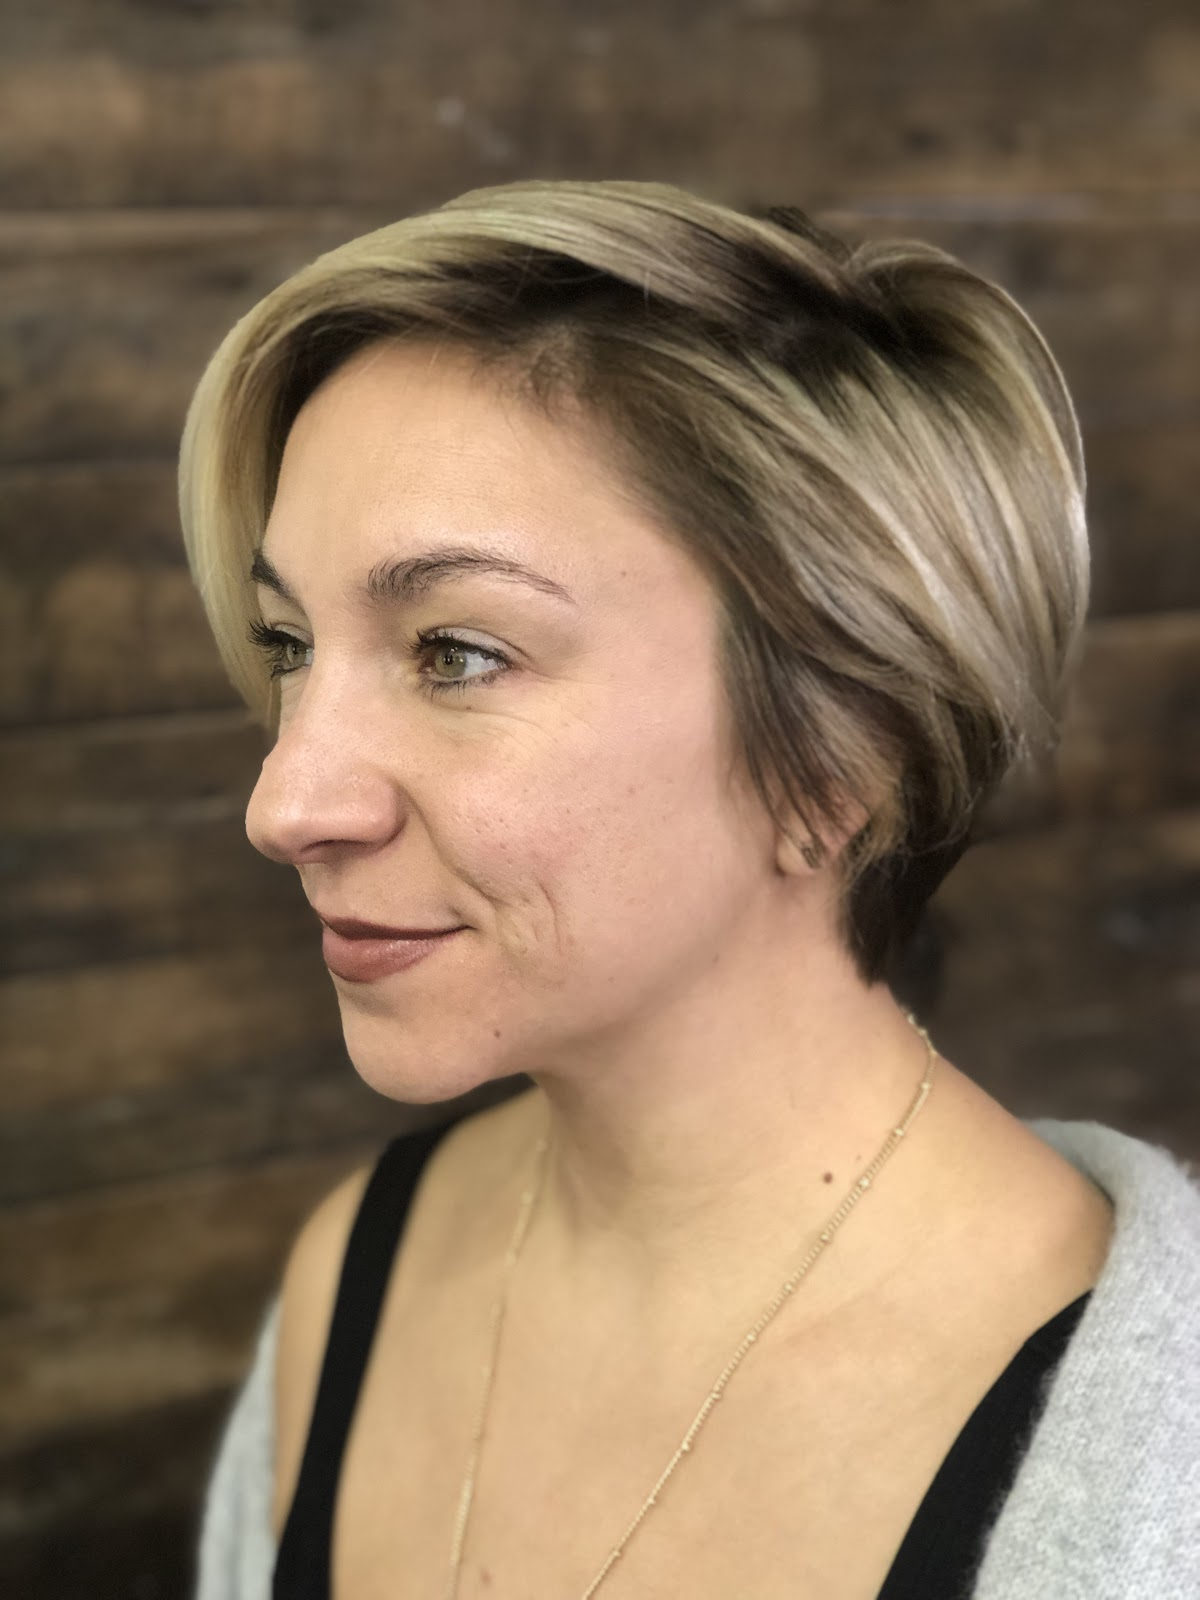 Highlights on Short Hair